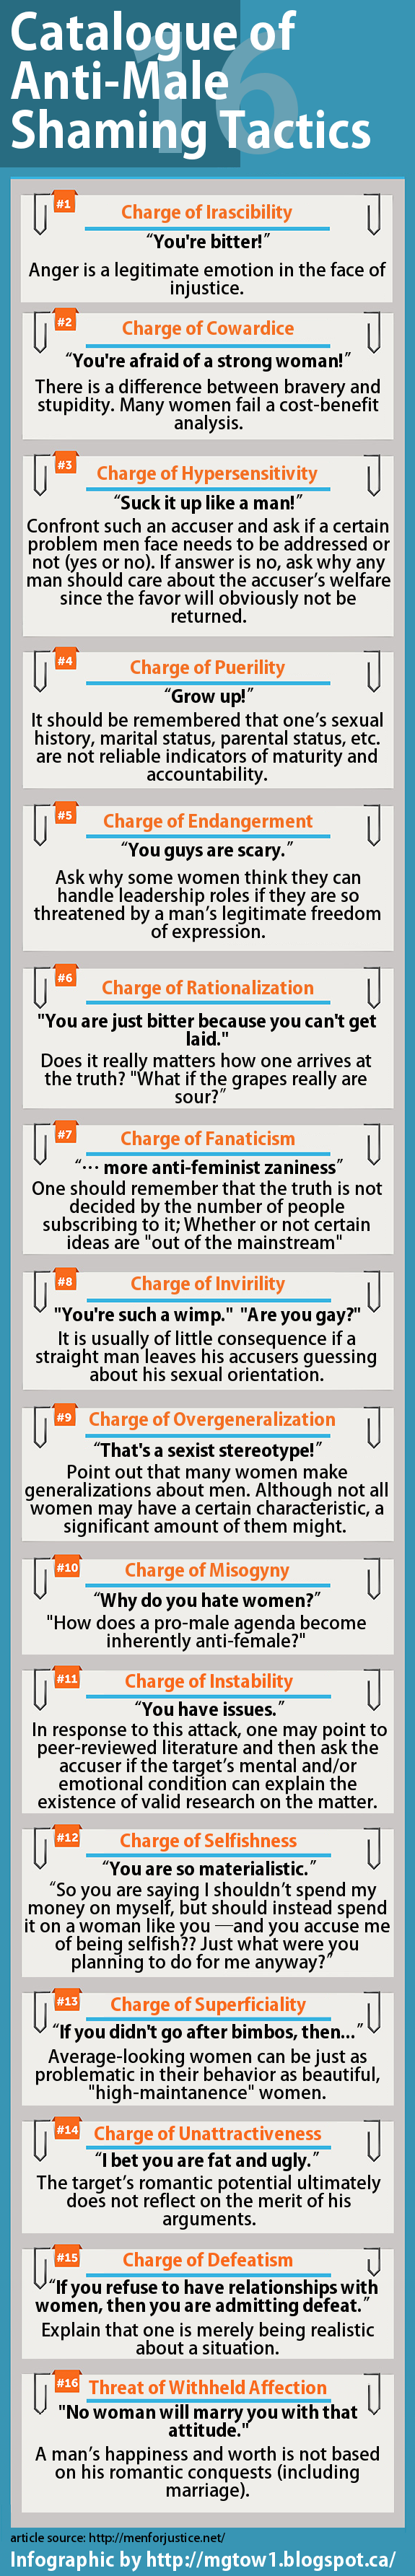 16 Anti-Male Shaming Tactics Infographic